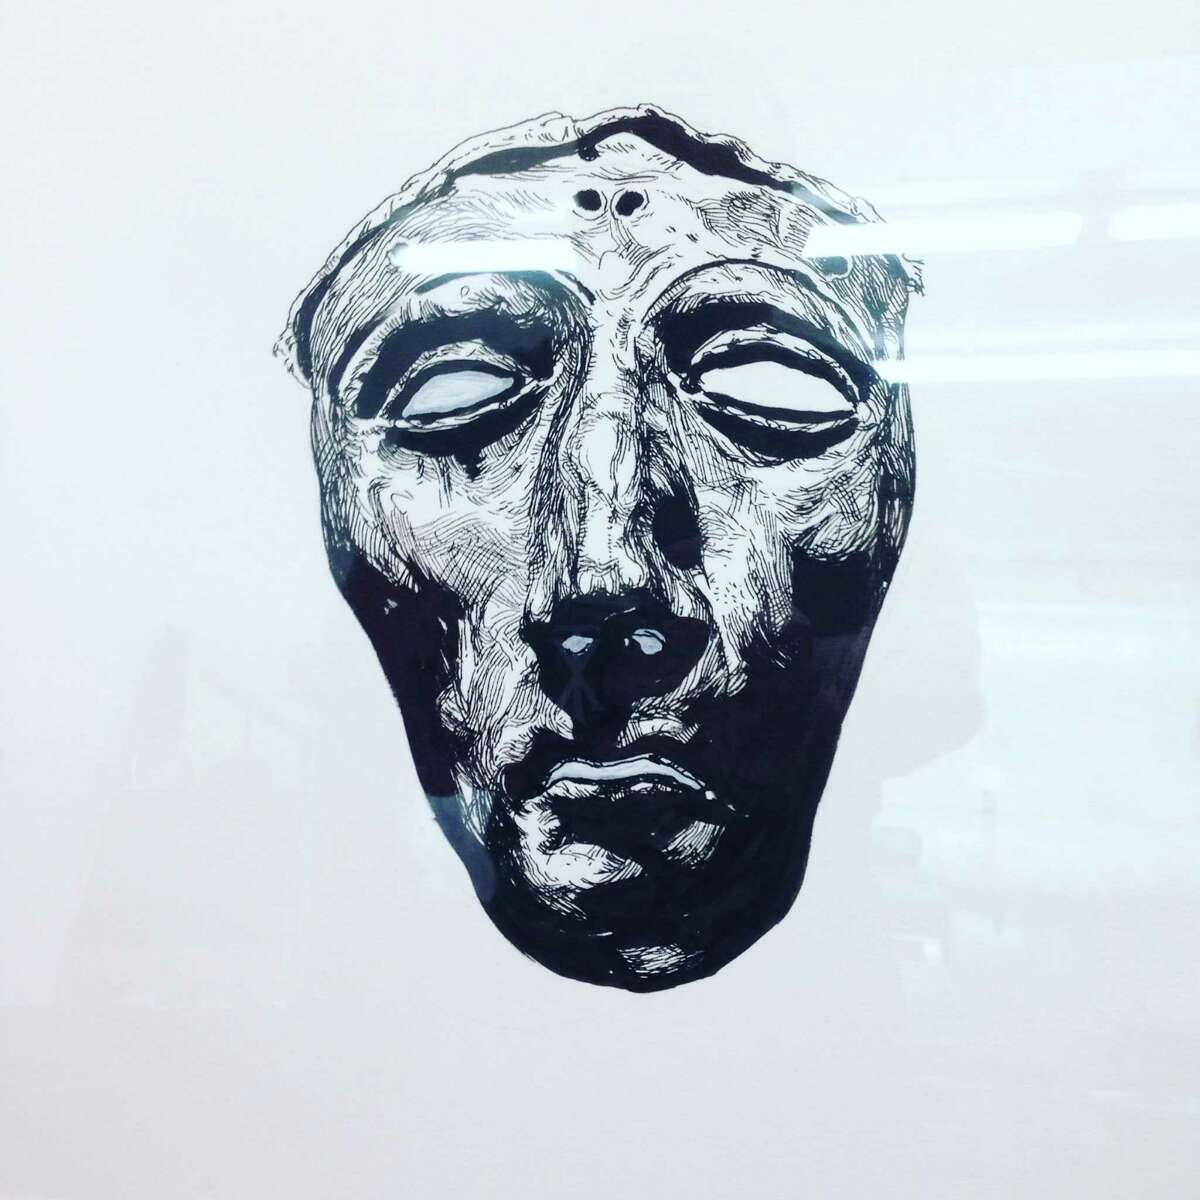 This ink drawing by Vincent Valdez of a Grecian death mask was taken off a wall of Bakery Lorraine at the Pearl.